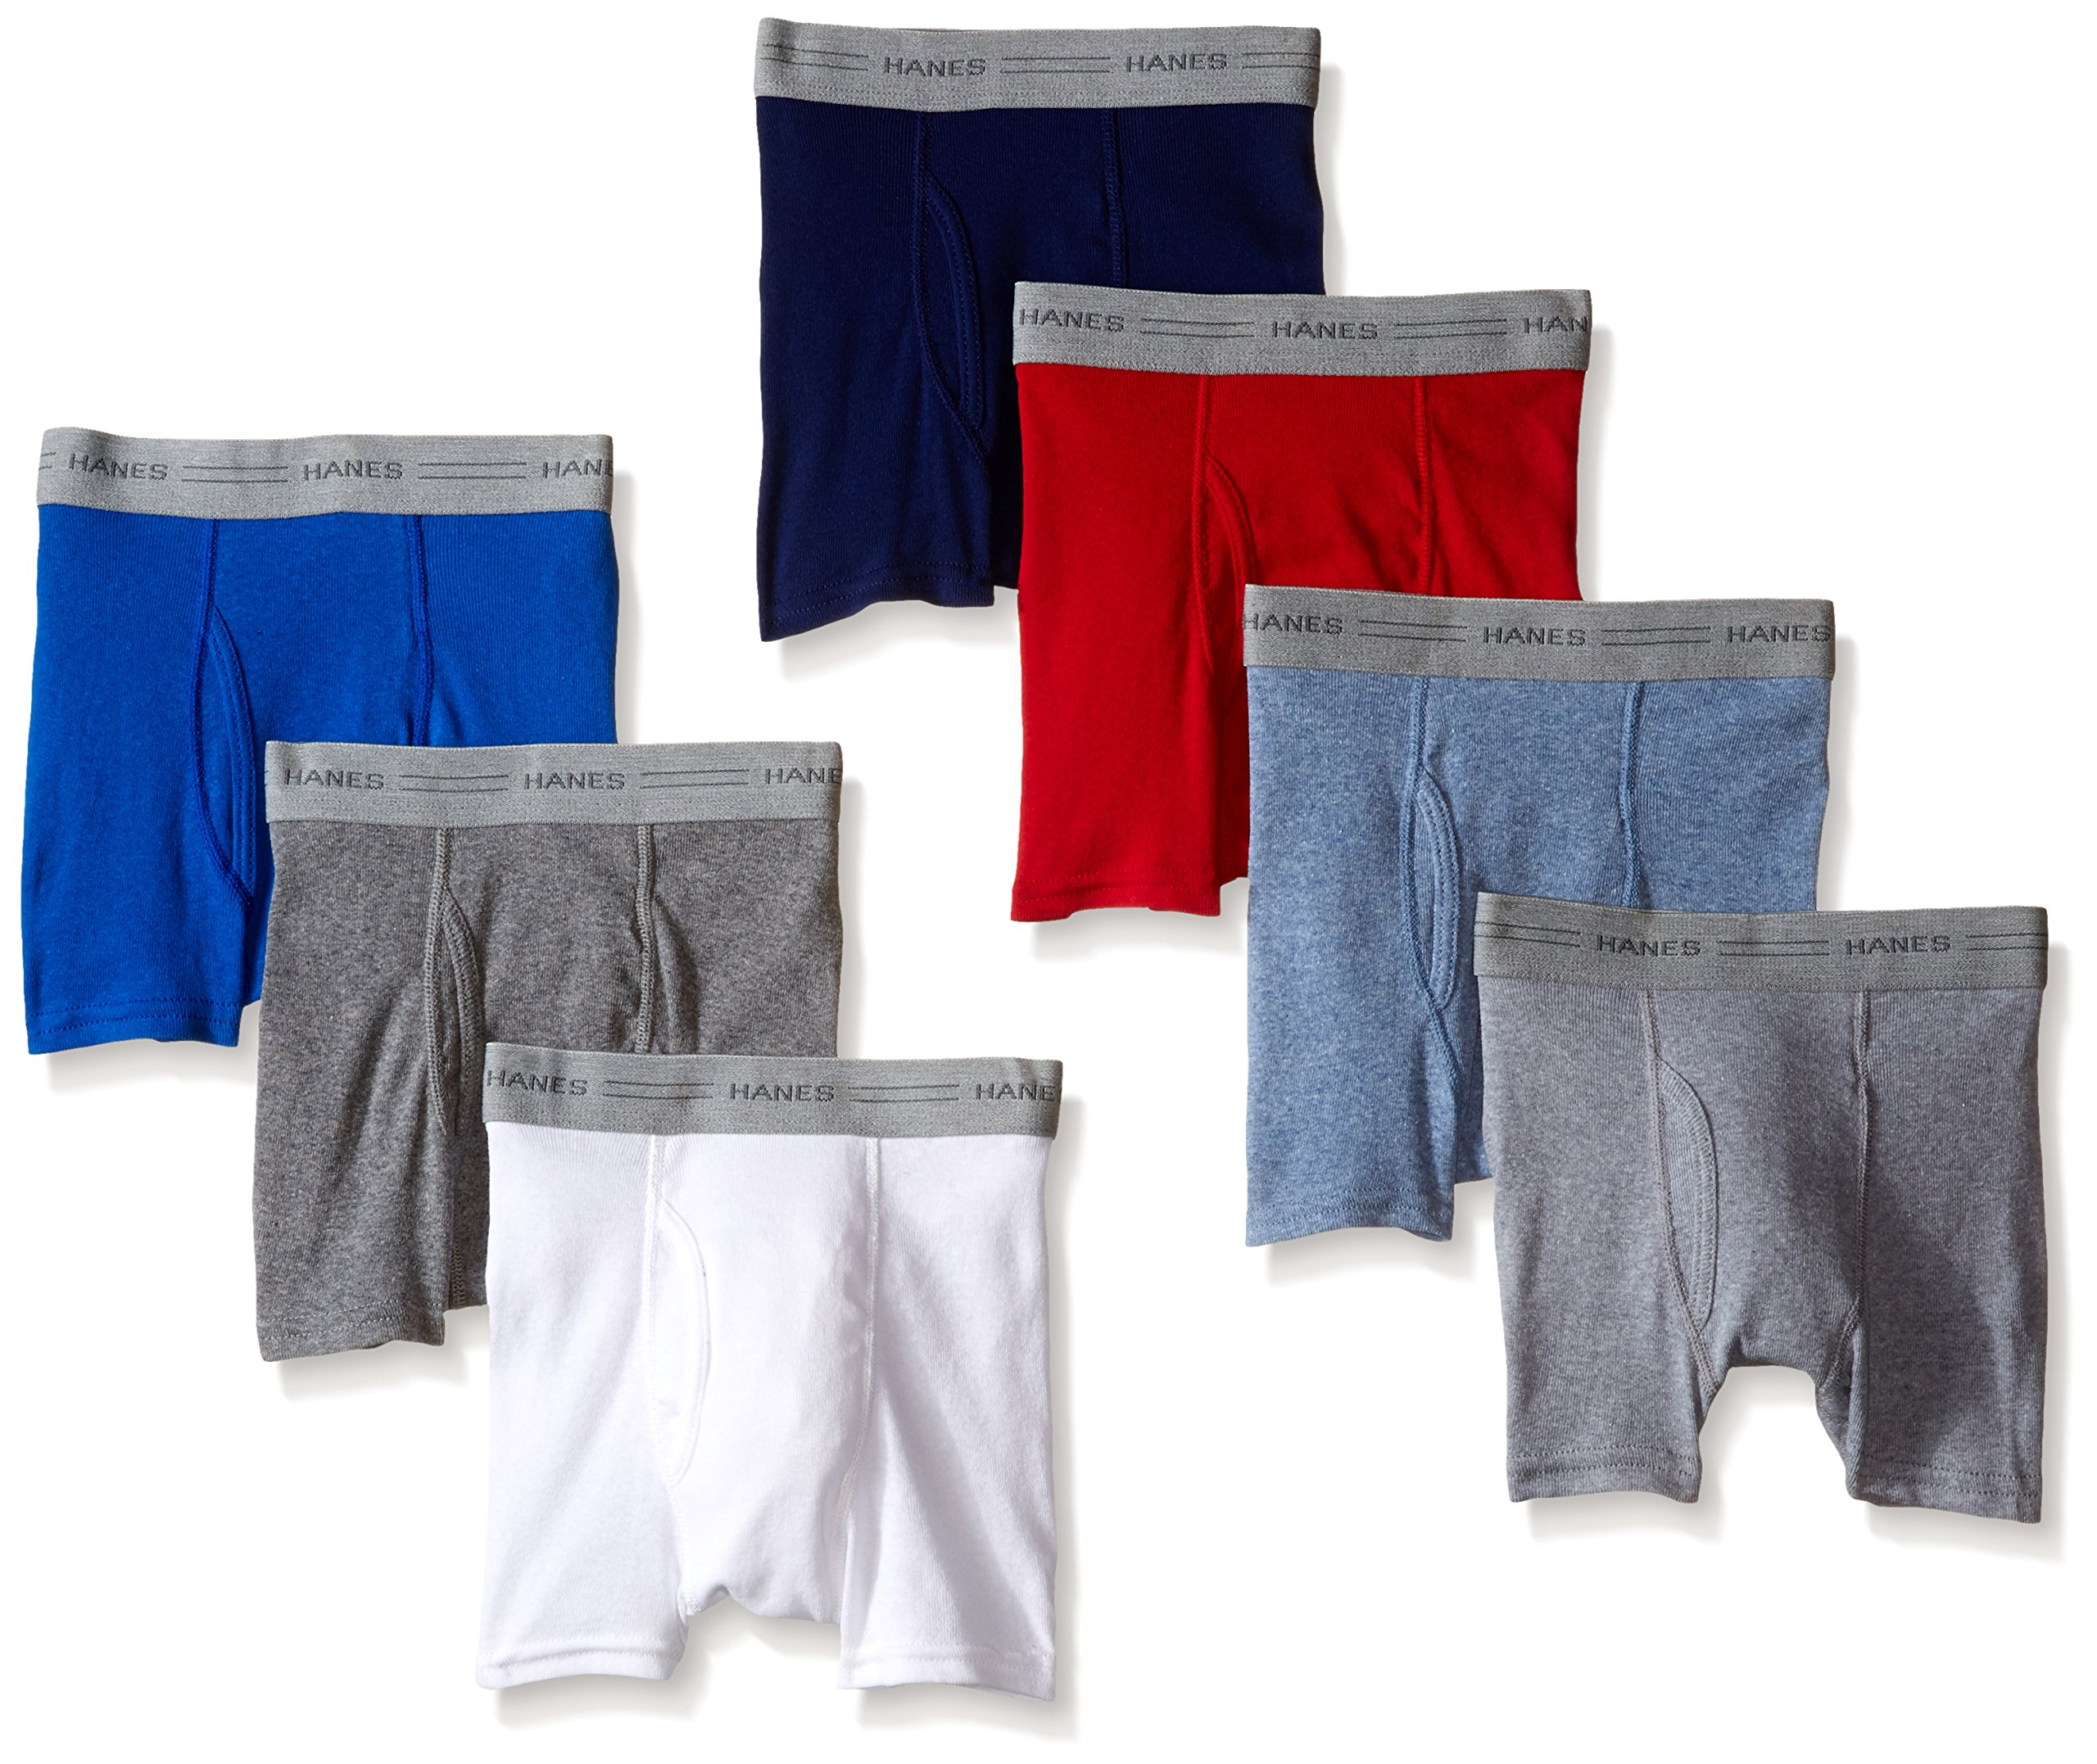 Hanes Toddler Boys Dyed Boxer Briefs, Assorted, 7-Pack, Medium by Hanes